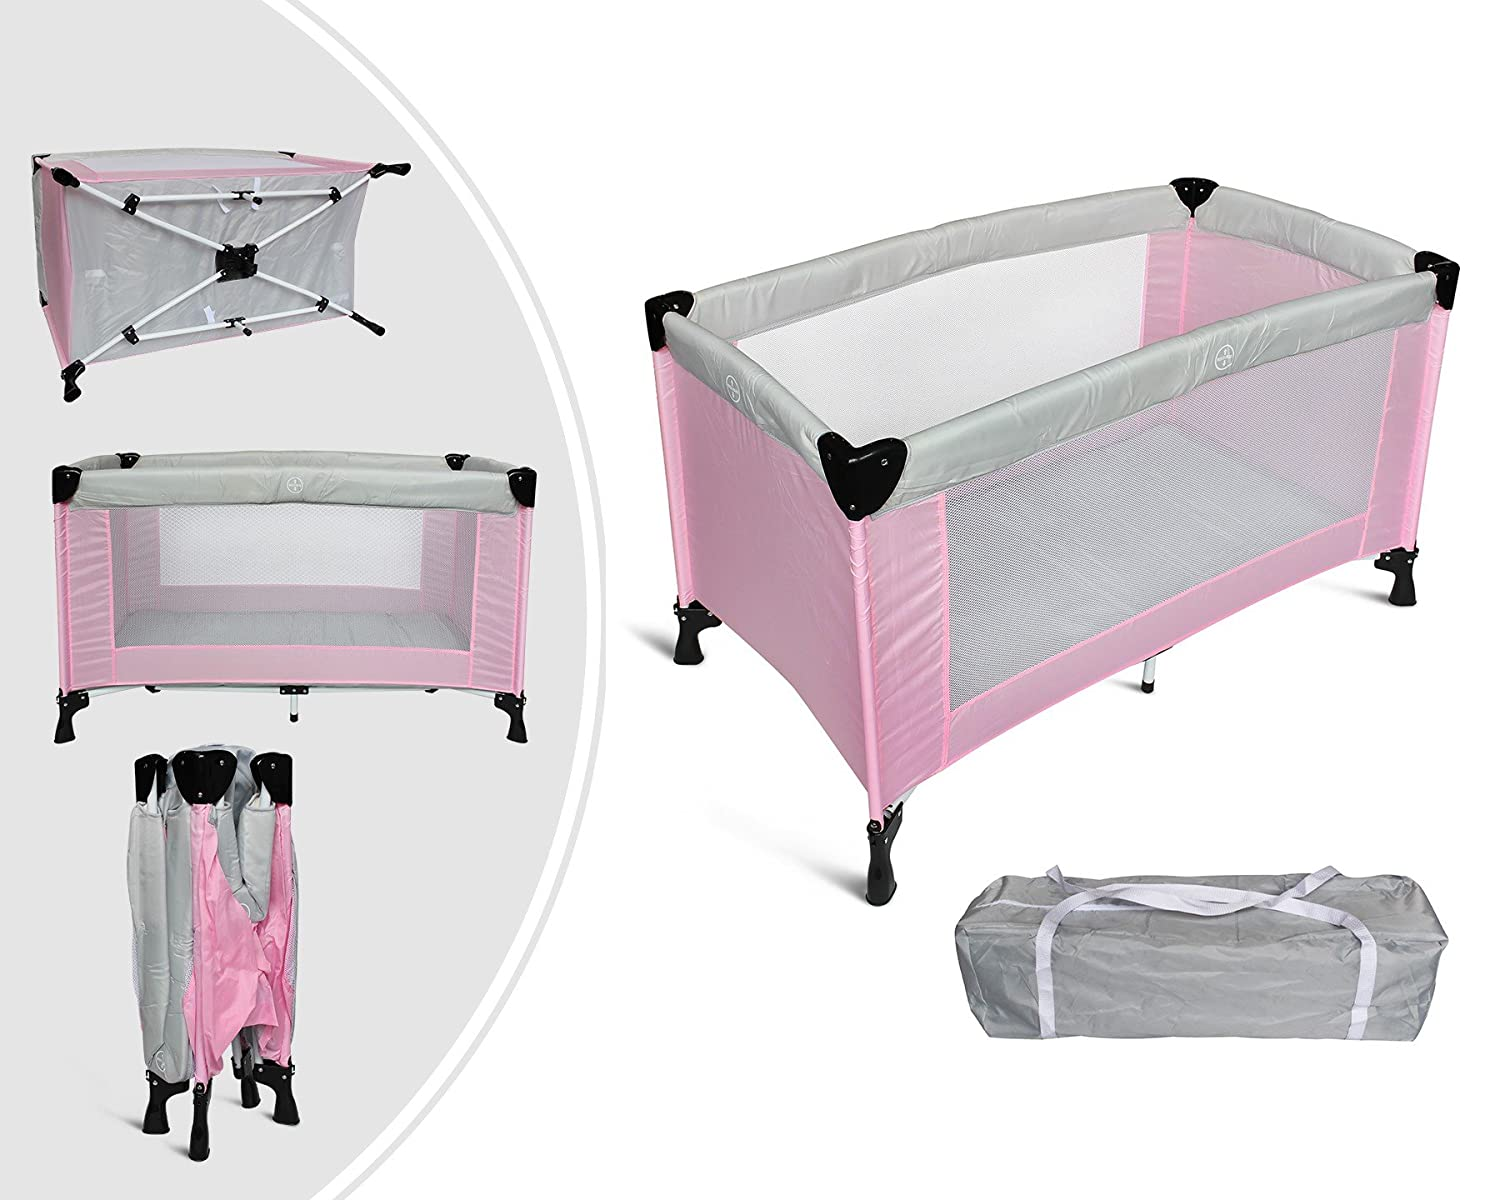 Leogreen - Baby Play Yard, Baby Safety Playpen, CE Standard, 49.2 x 25.6 x 29.9 inch, Grey/Pink, Deployed Size: 125 x 76 x 65 cm, Weight: 8.84 kg